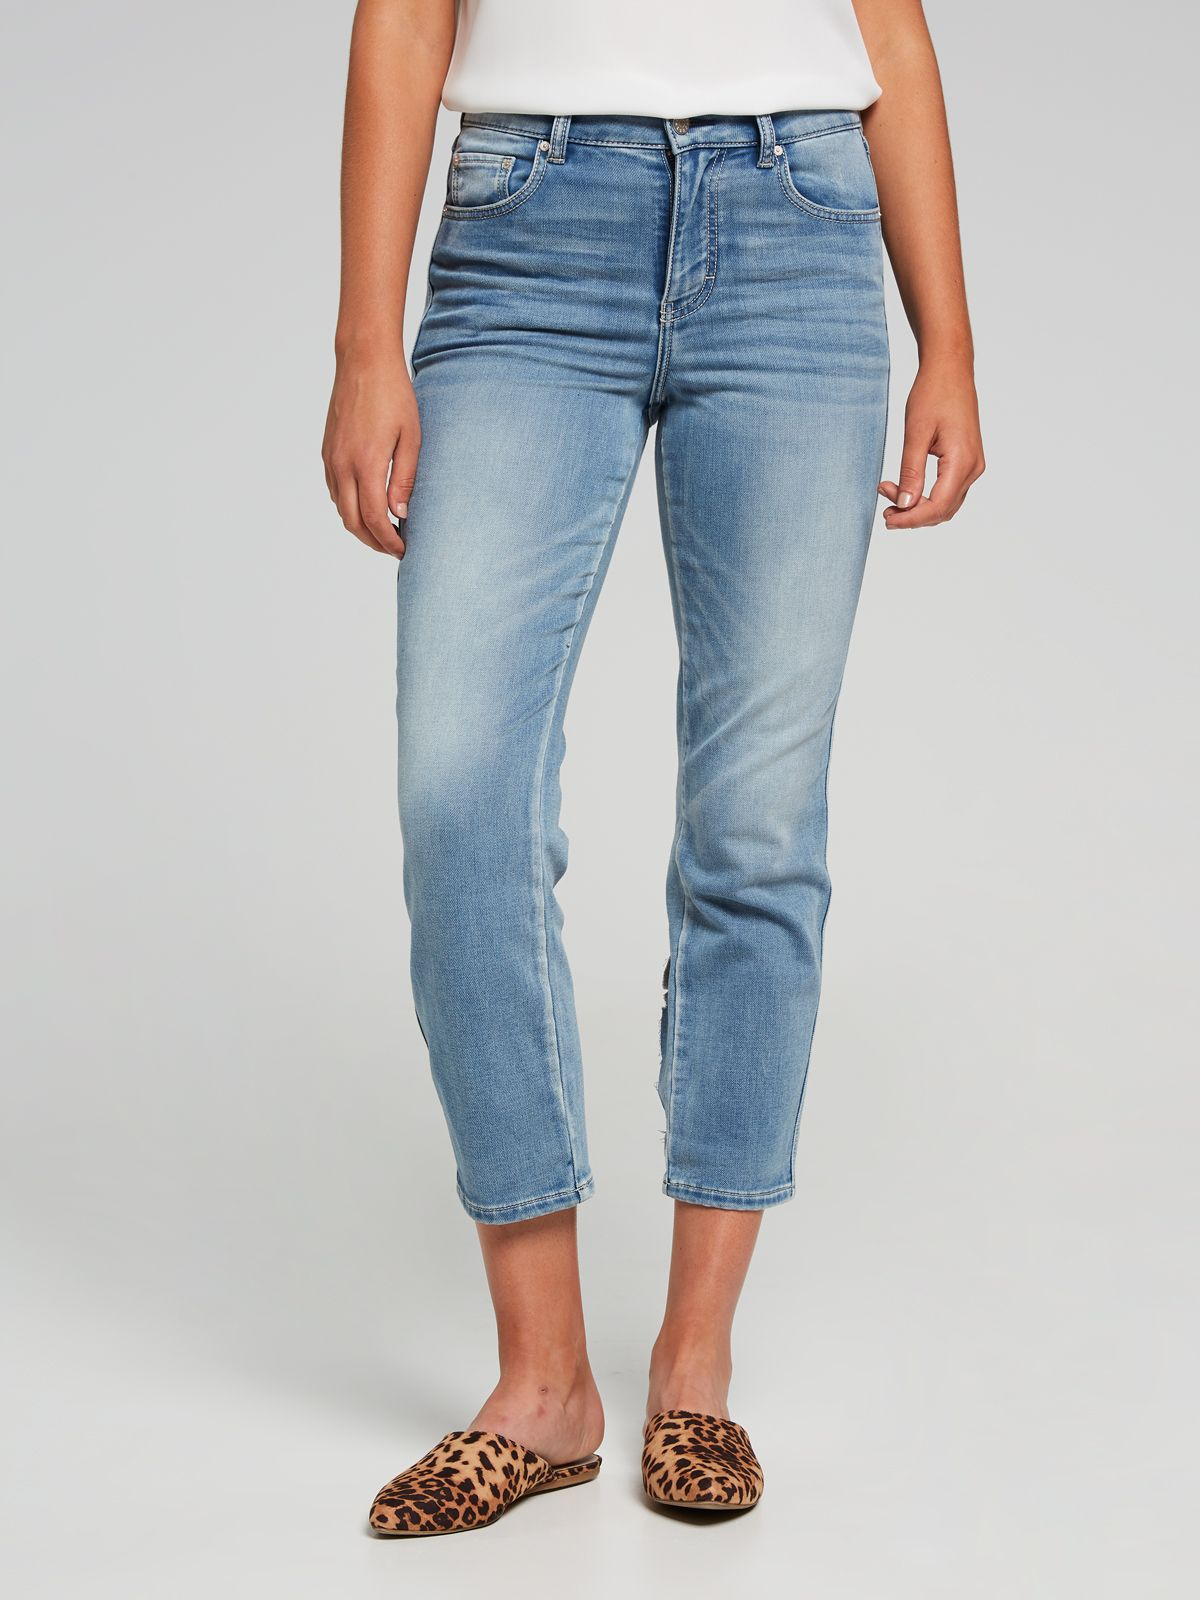 Amaze Slim Crop Jean Vintage Blue Just Jeans Online